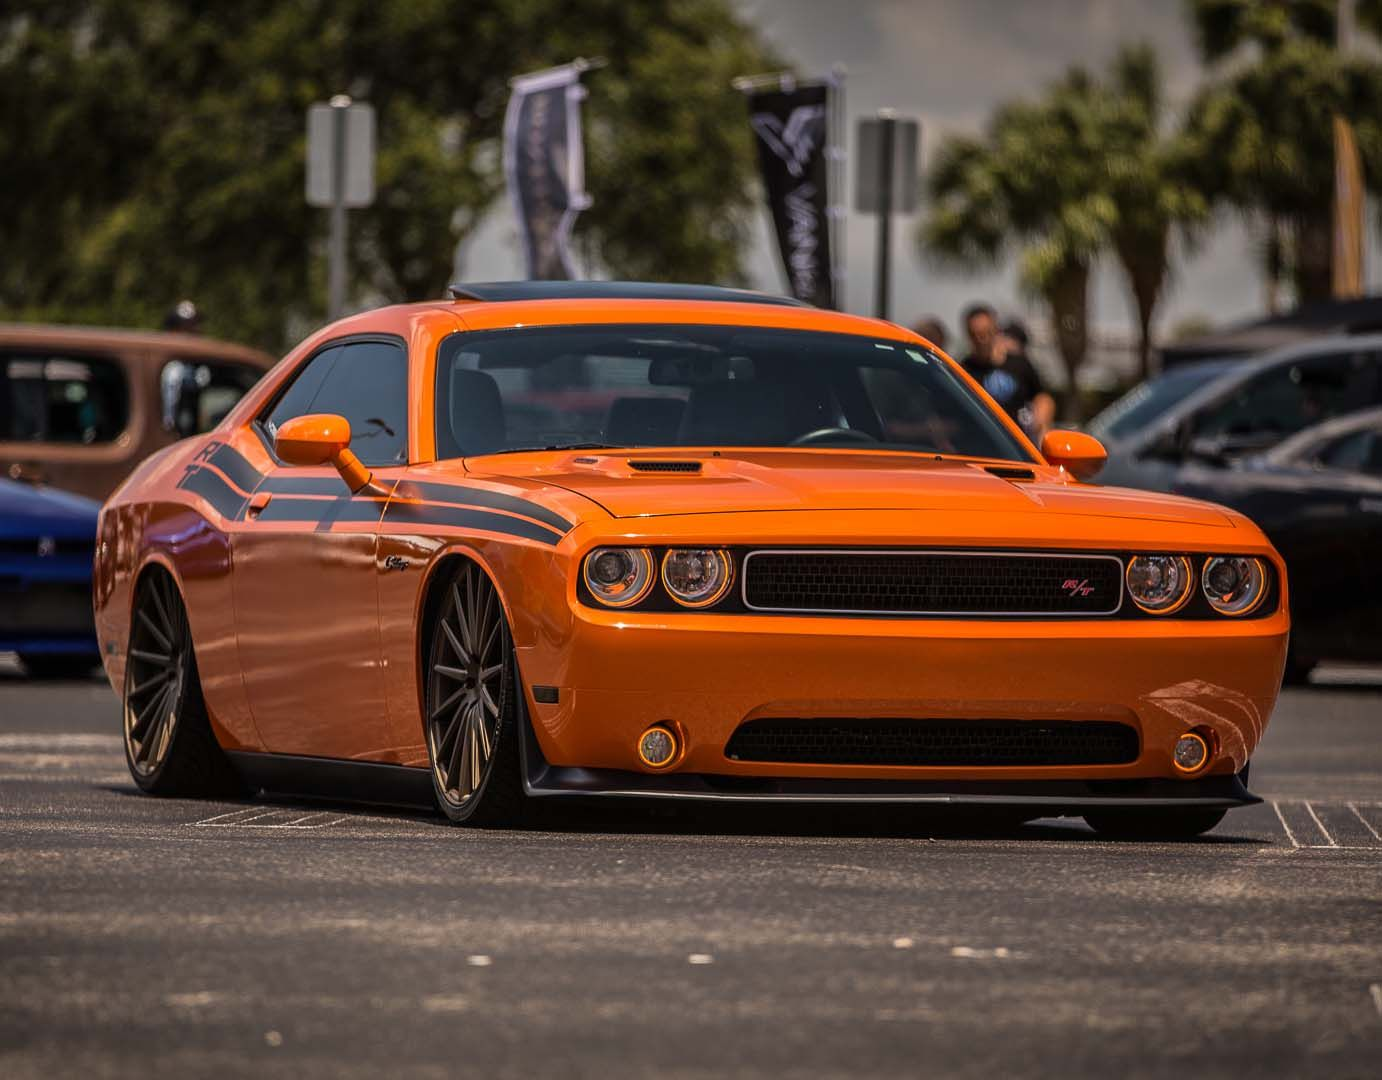 Pin by carl on cars n planes | Pinterest | Dodge challenger, Mopar ...